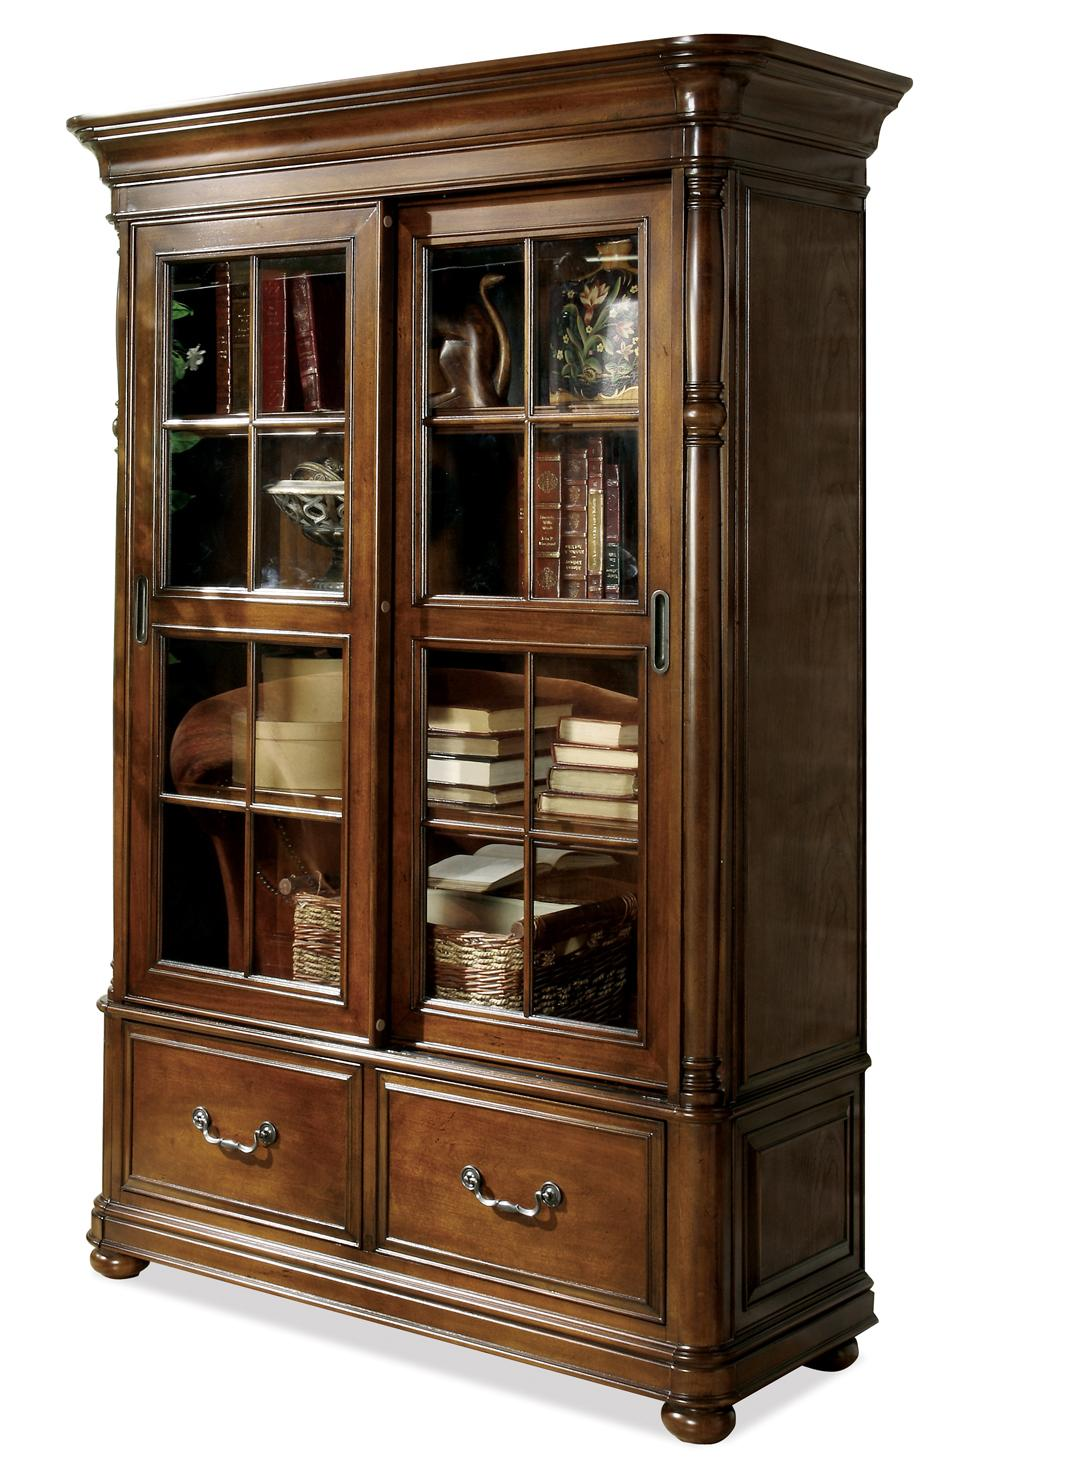 Riverside Furniture Bristol Court Sliding Door Bookcase - Item Number: 24537